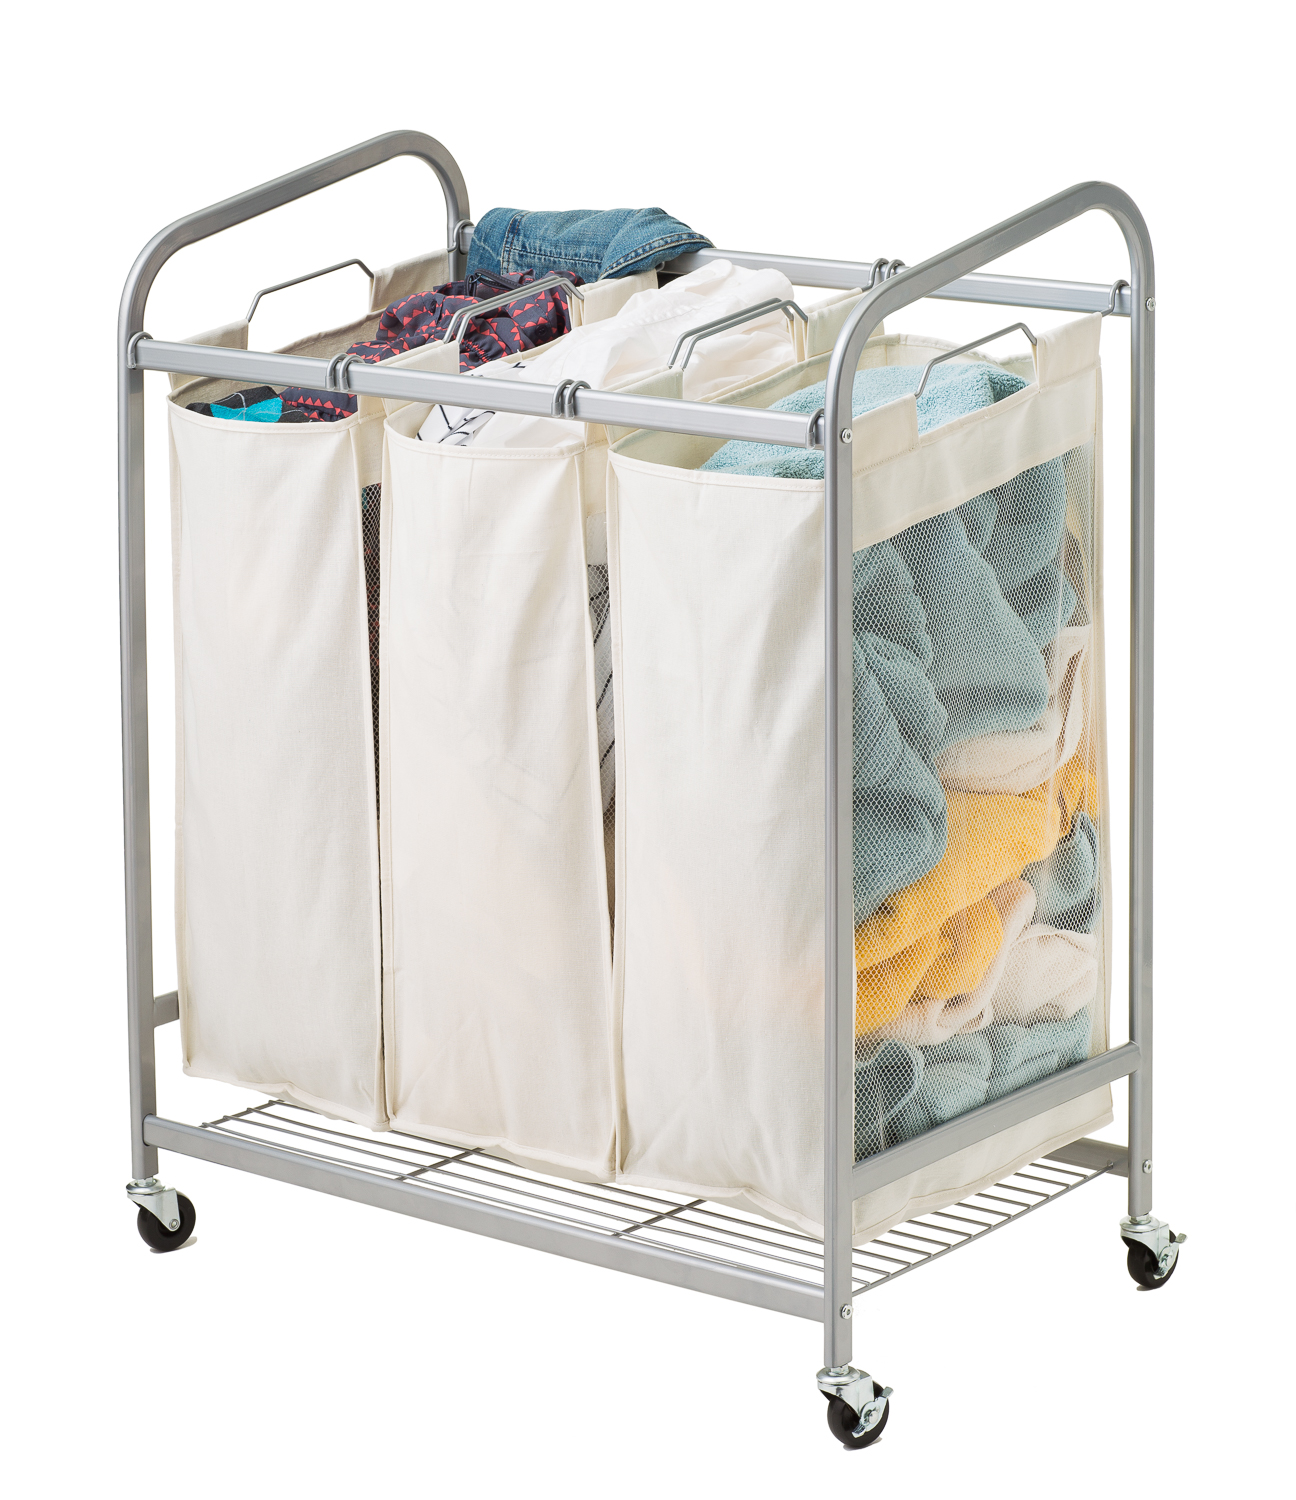 Wire Laundry Hamper On Wheels 3 Bag Metal Laundry Sorter In Silver Wire Shelf Additions